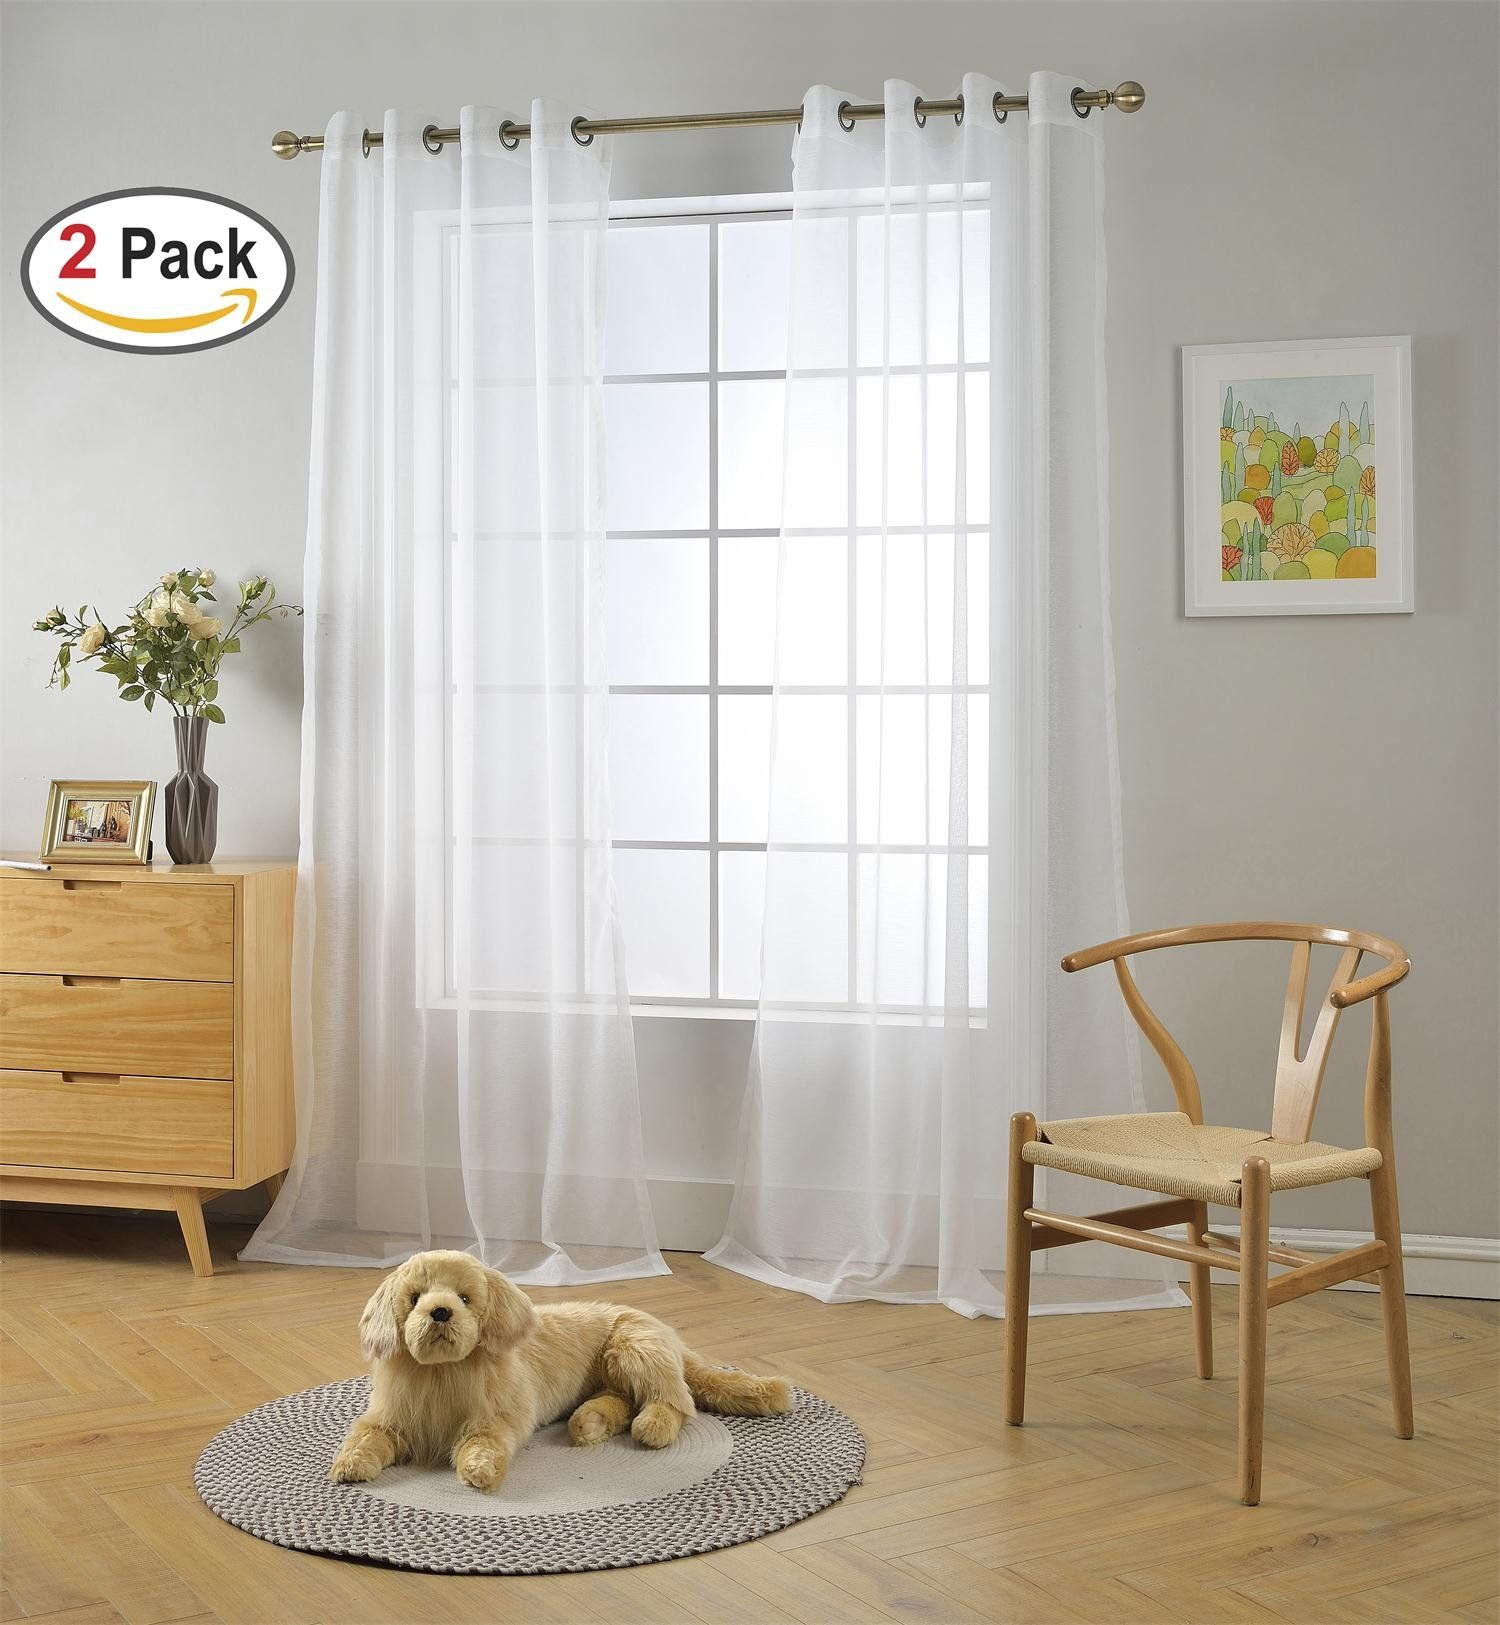 Miuco 2 panels white curtains grommet textured solid sheer curtains 84 inches long for bedroom